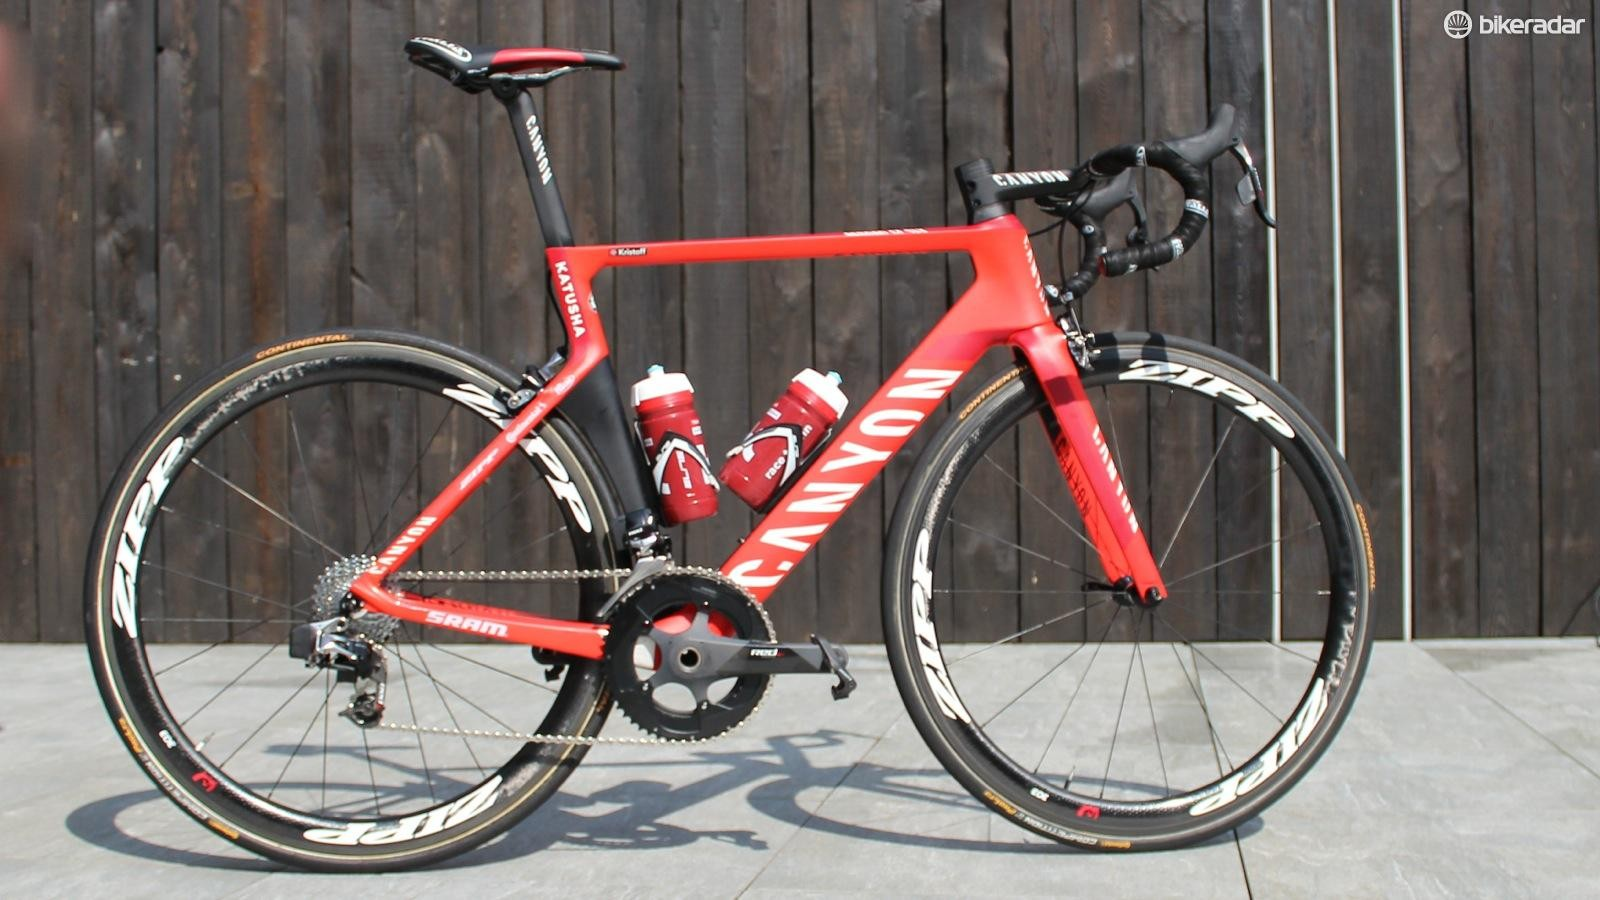 Alexander Kristoff's Canyon Aeroad CF SLX proved to be the winning bike last year at Flanders. Could it win again in 2016?